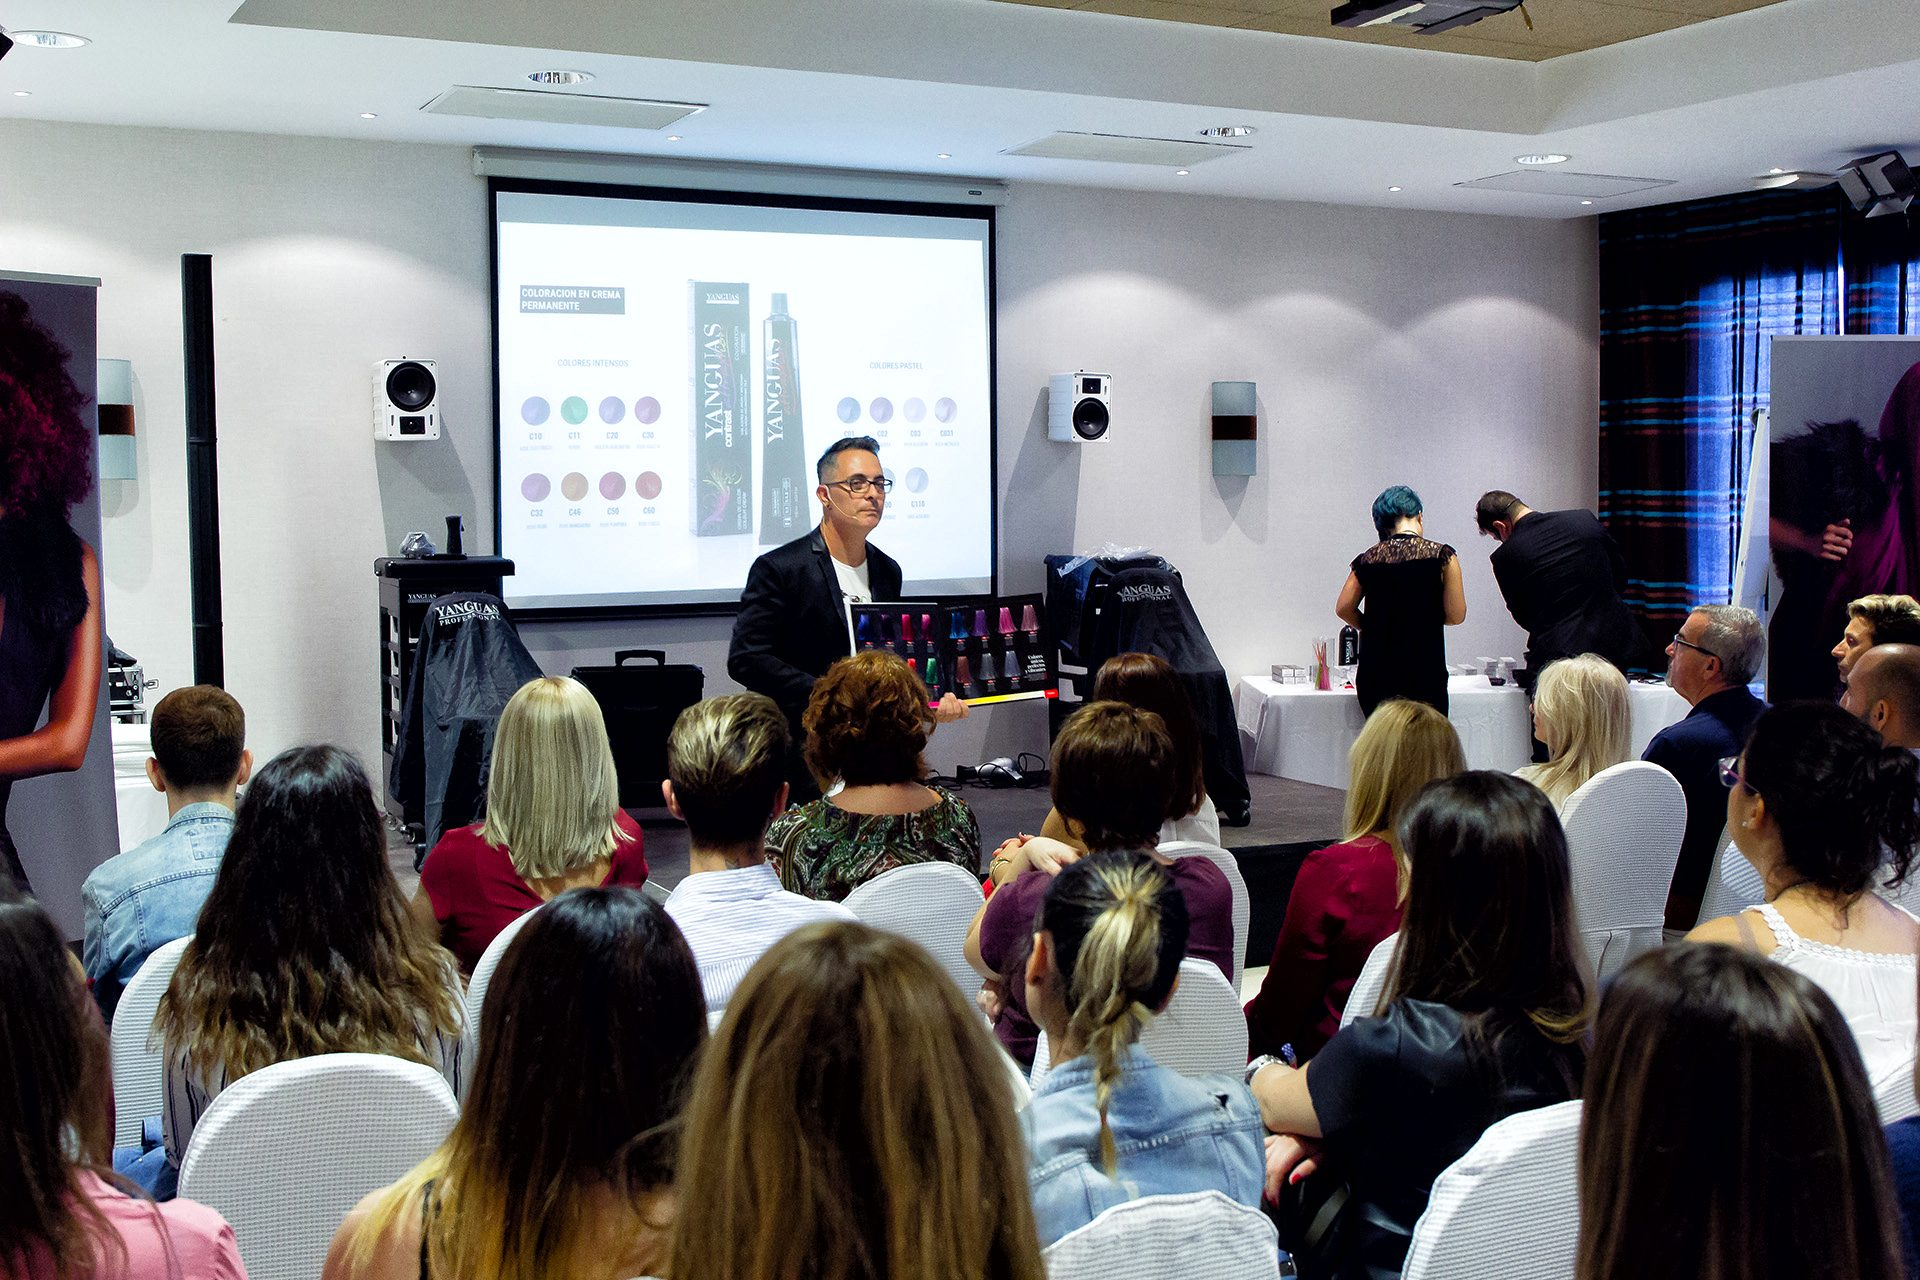 Formacion Yanguas Professional - Sotogrande (Cadiz) Organizada Por Beauty Hair Distribución.